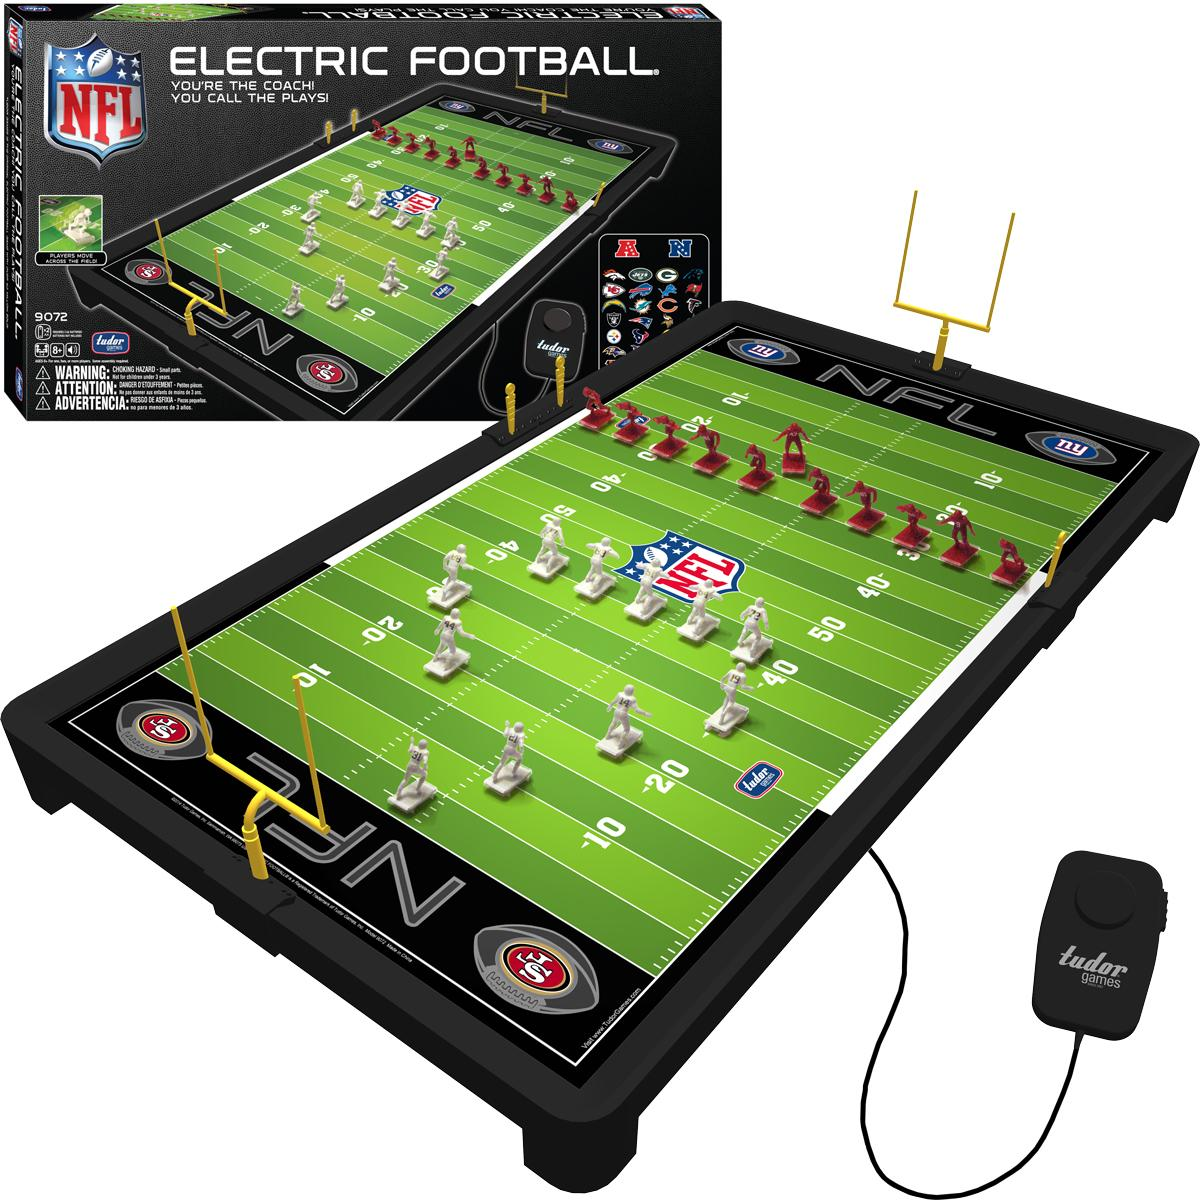 Image result for old electronic football game set picture